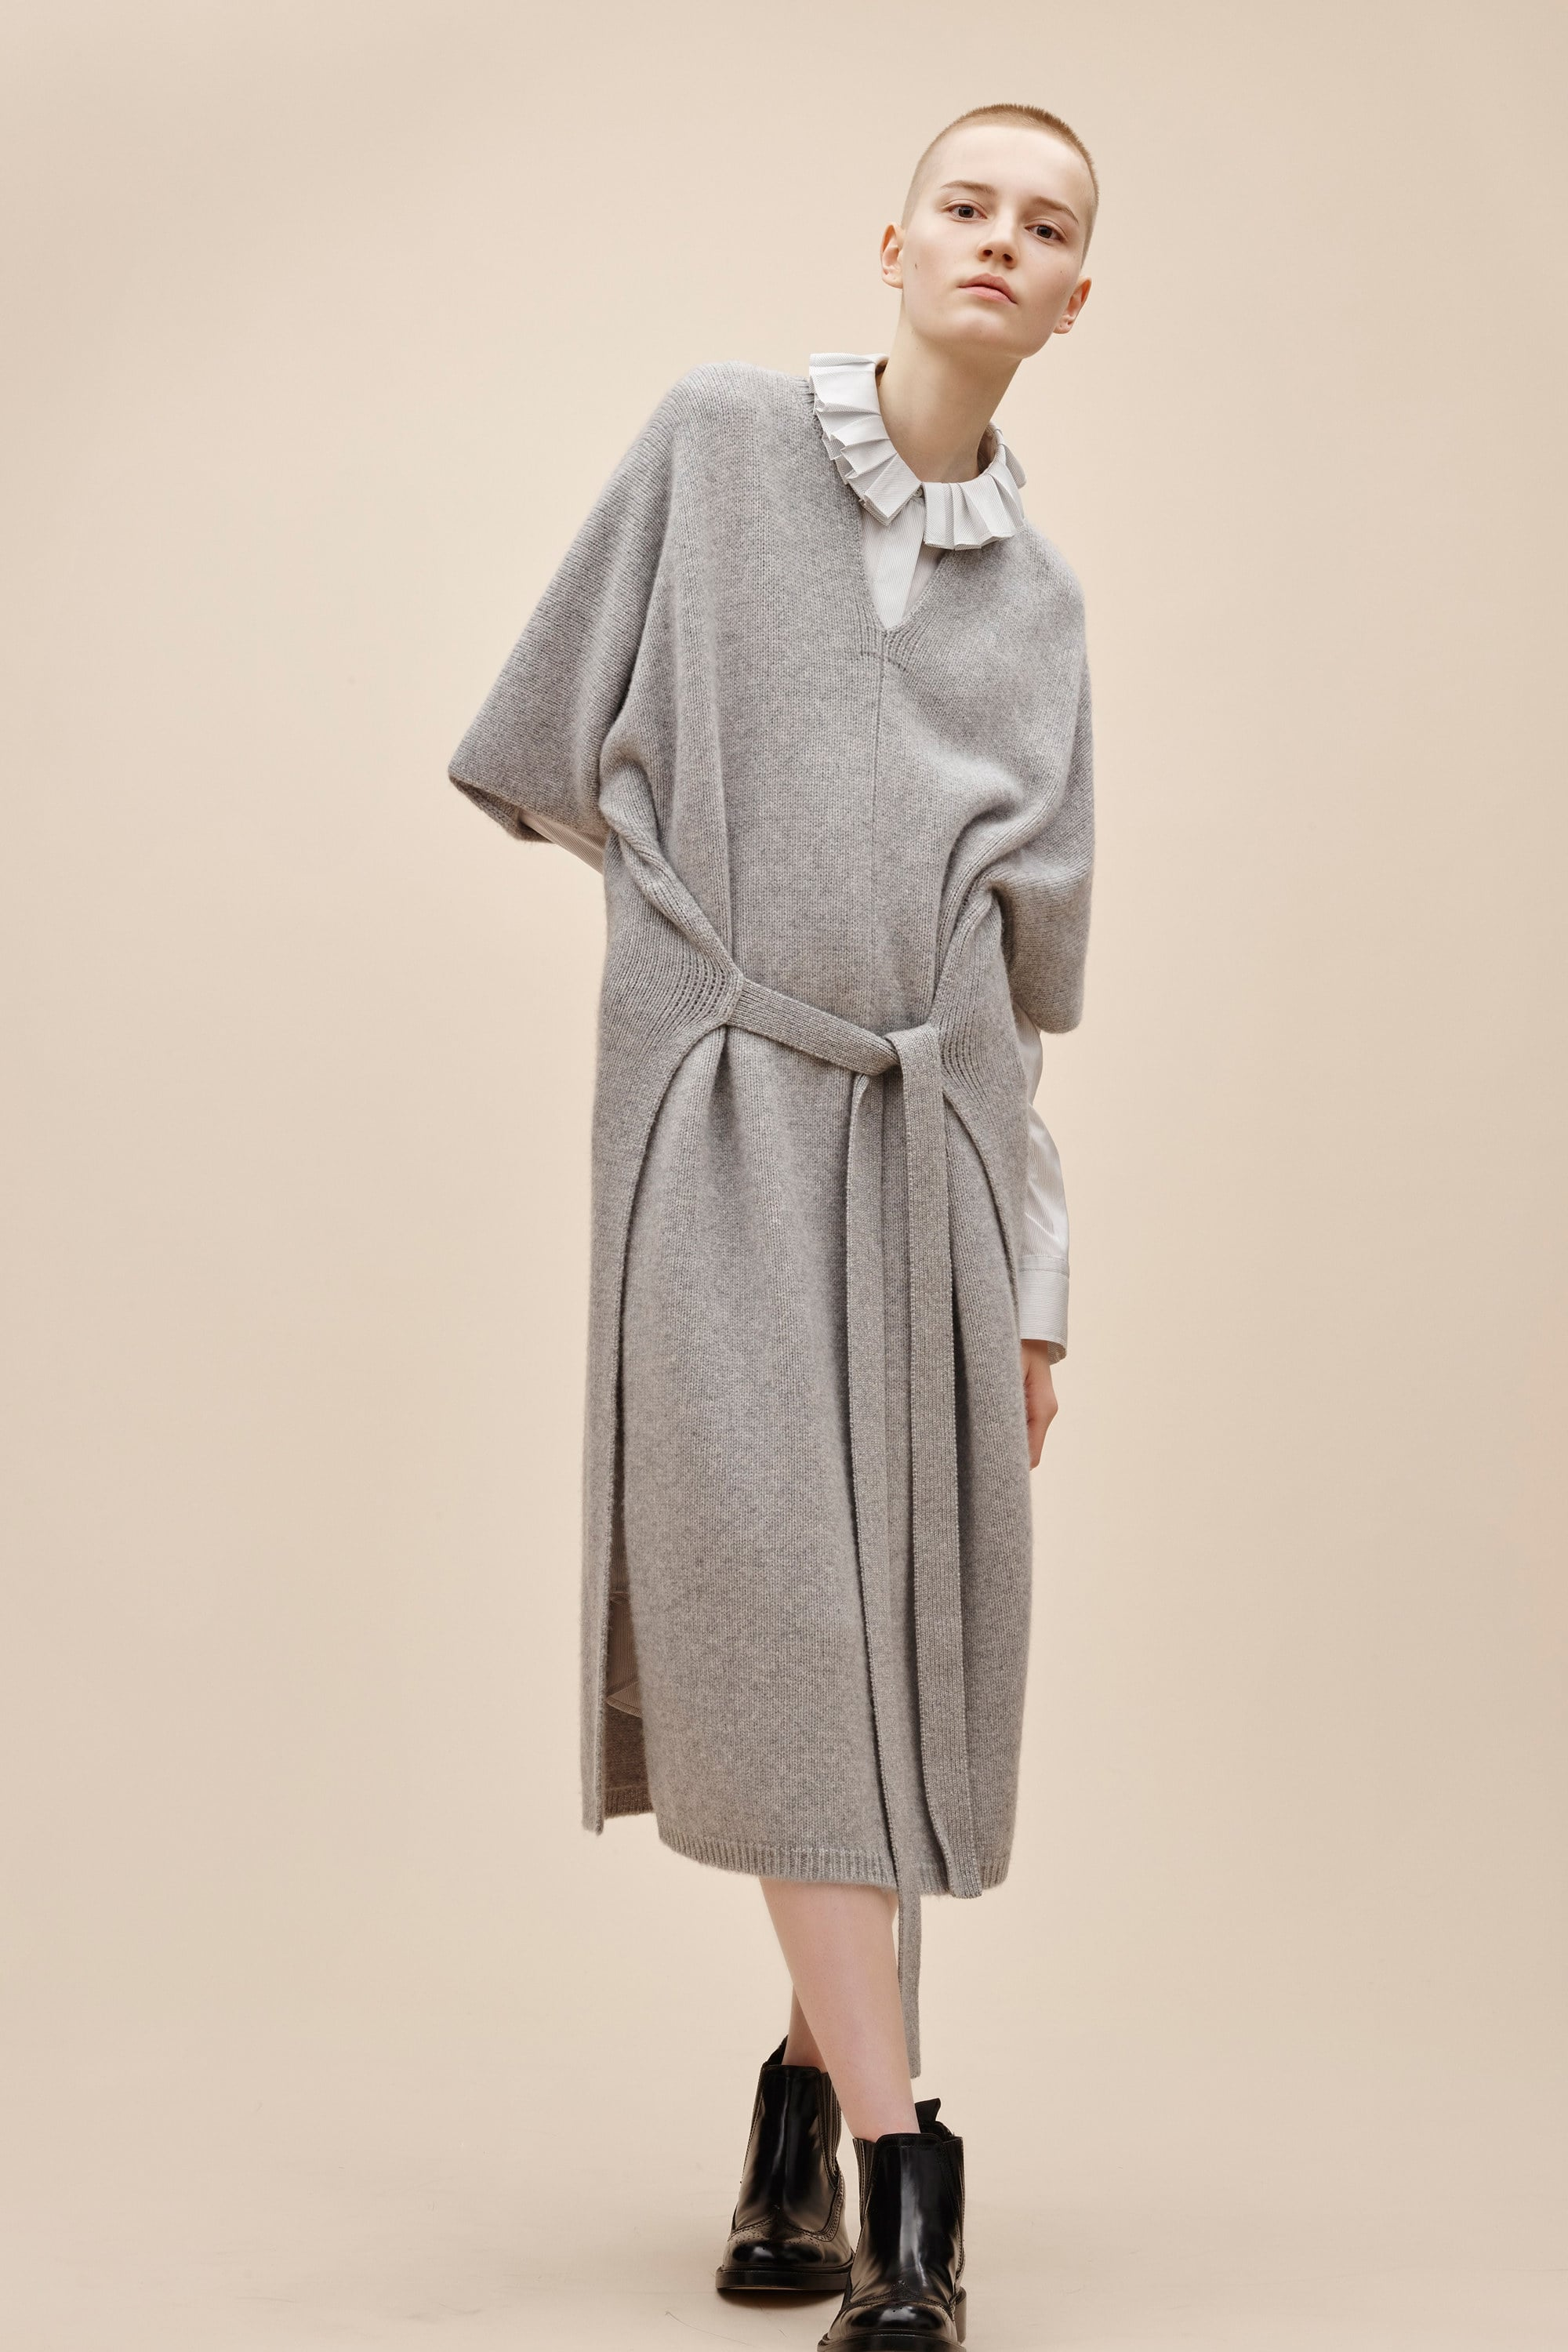 joseph-pre-fall-2016-lookbook-16.jpg